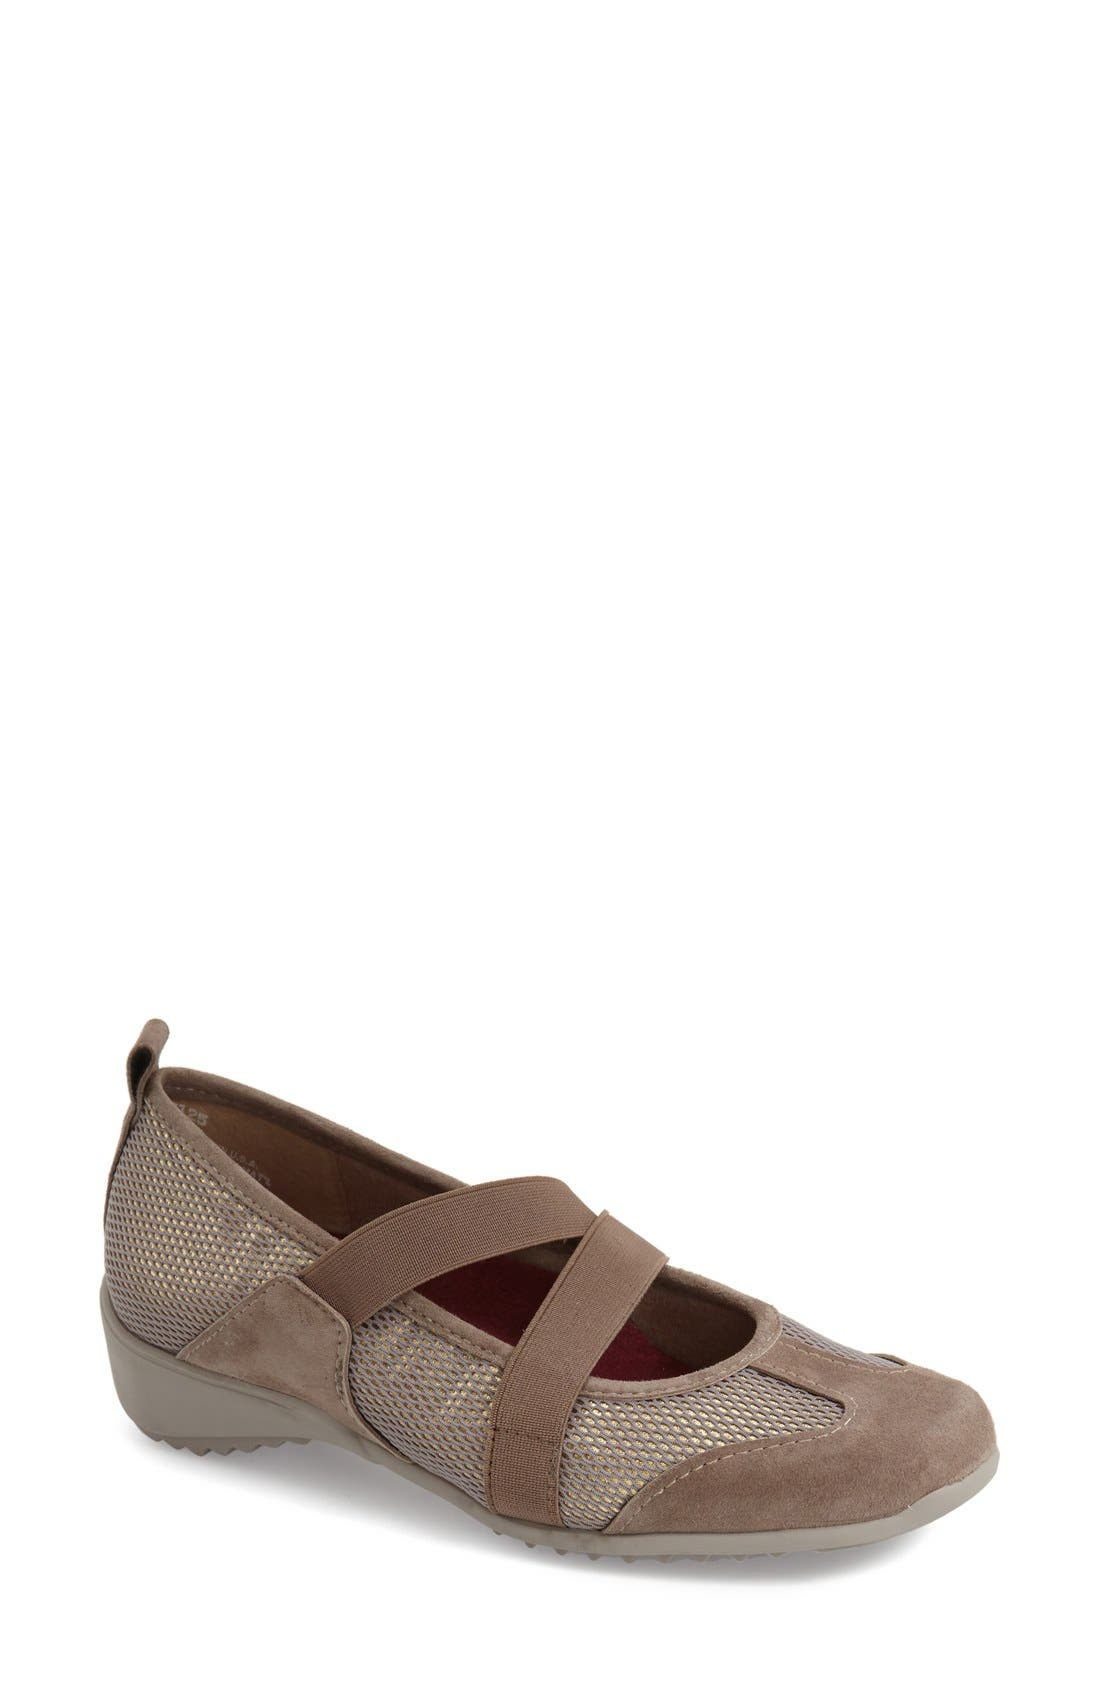 Munro 'Zip' Mary Jane Flat (Women)